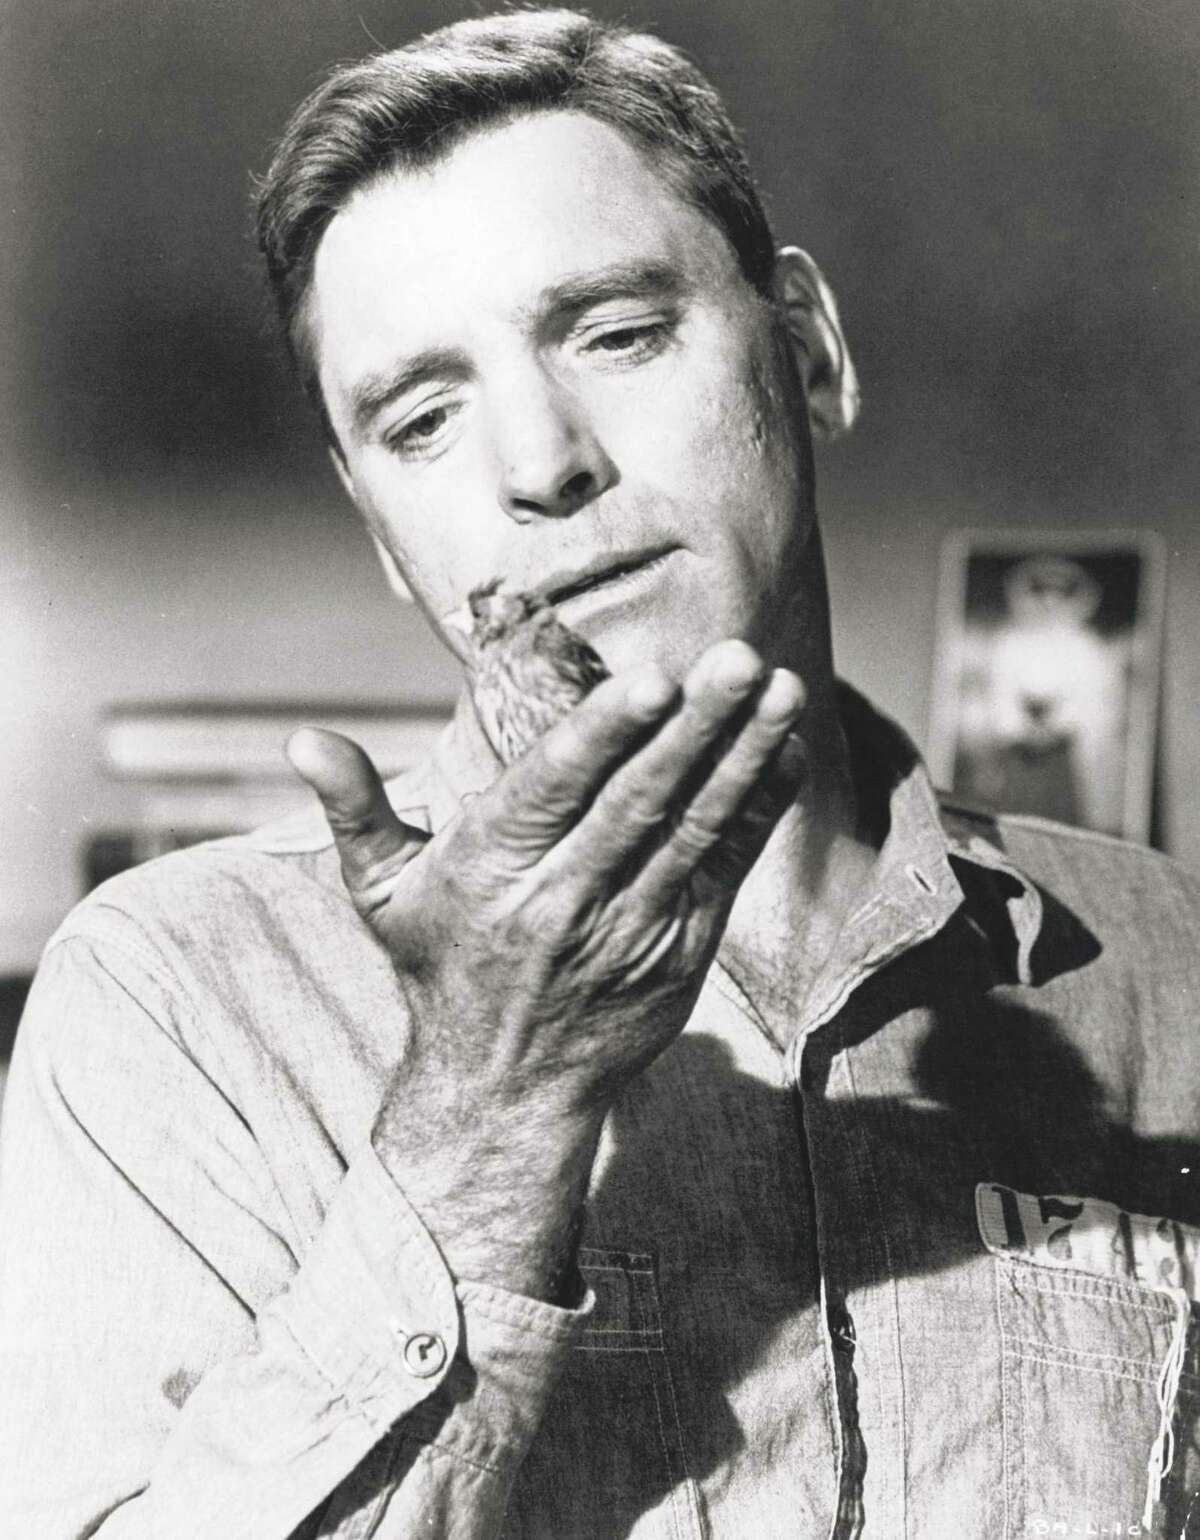 """A case can be made for """"Birdman of Alcatraz"""" as one of Burt Lancaster's top films."""